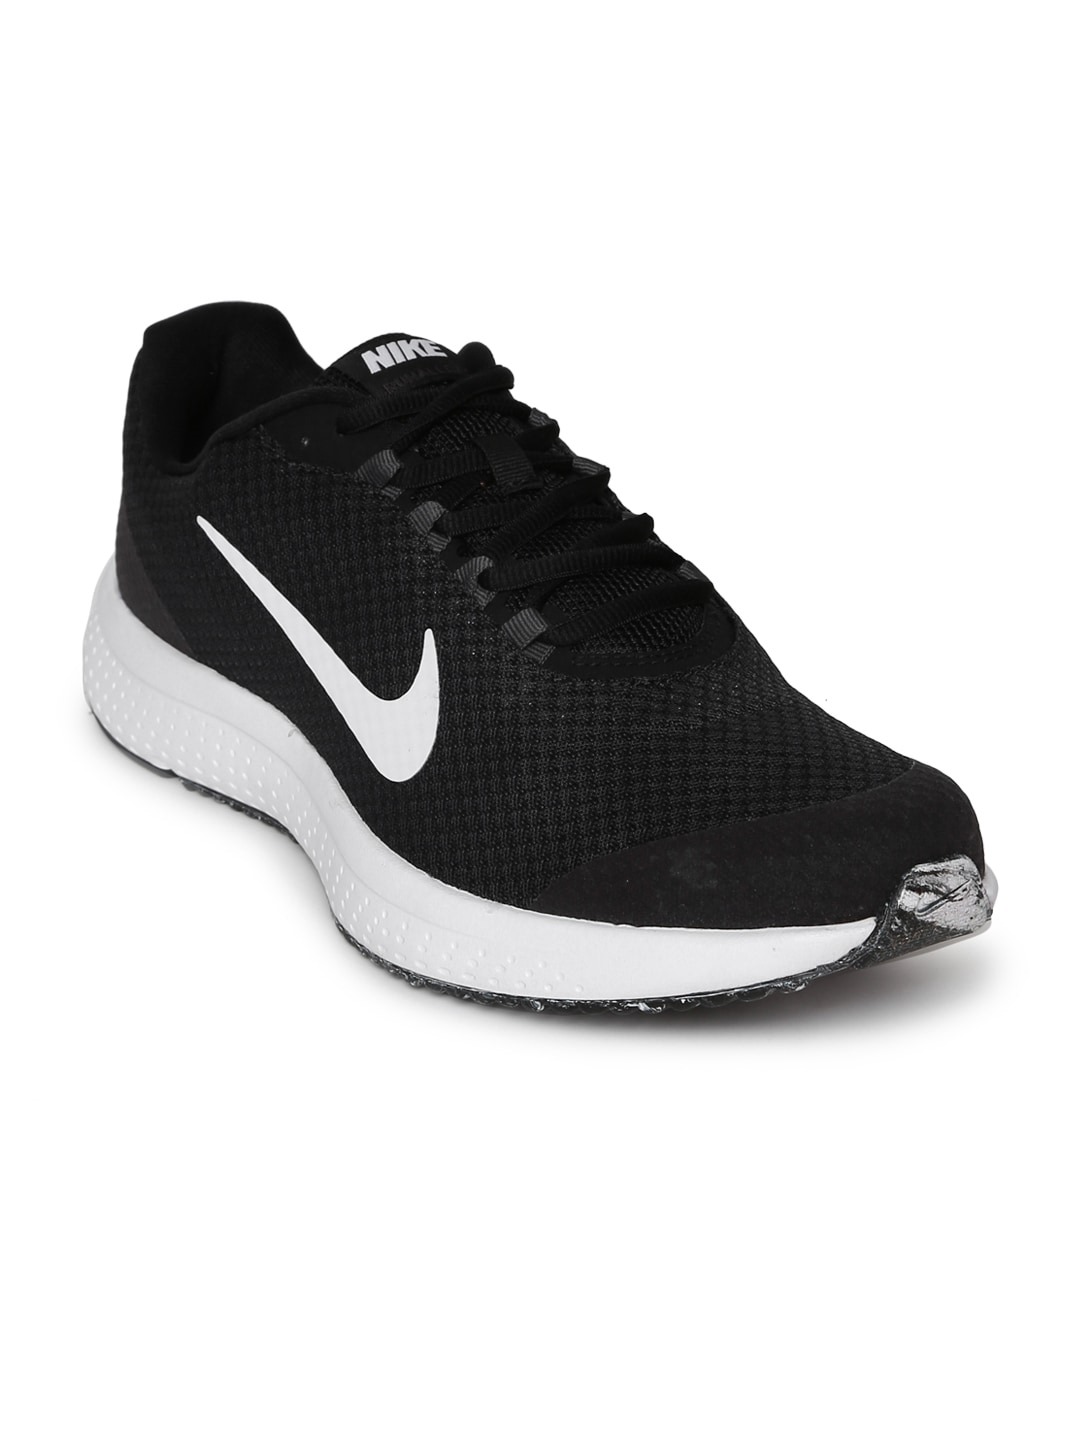 a8d9cd5d4dffbb Nike Running Shoes - Buy Nike Running Shoes Online